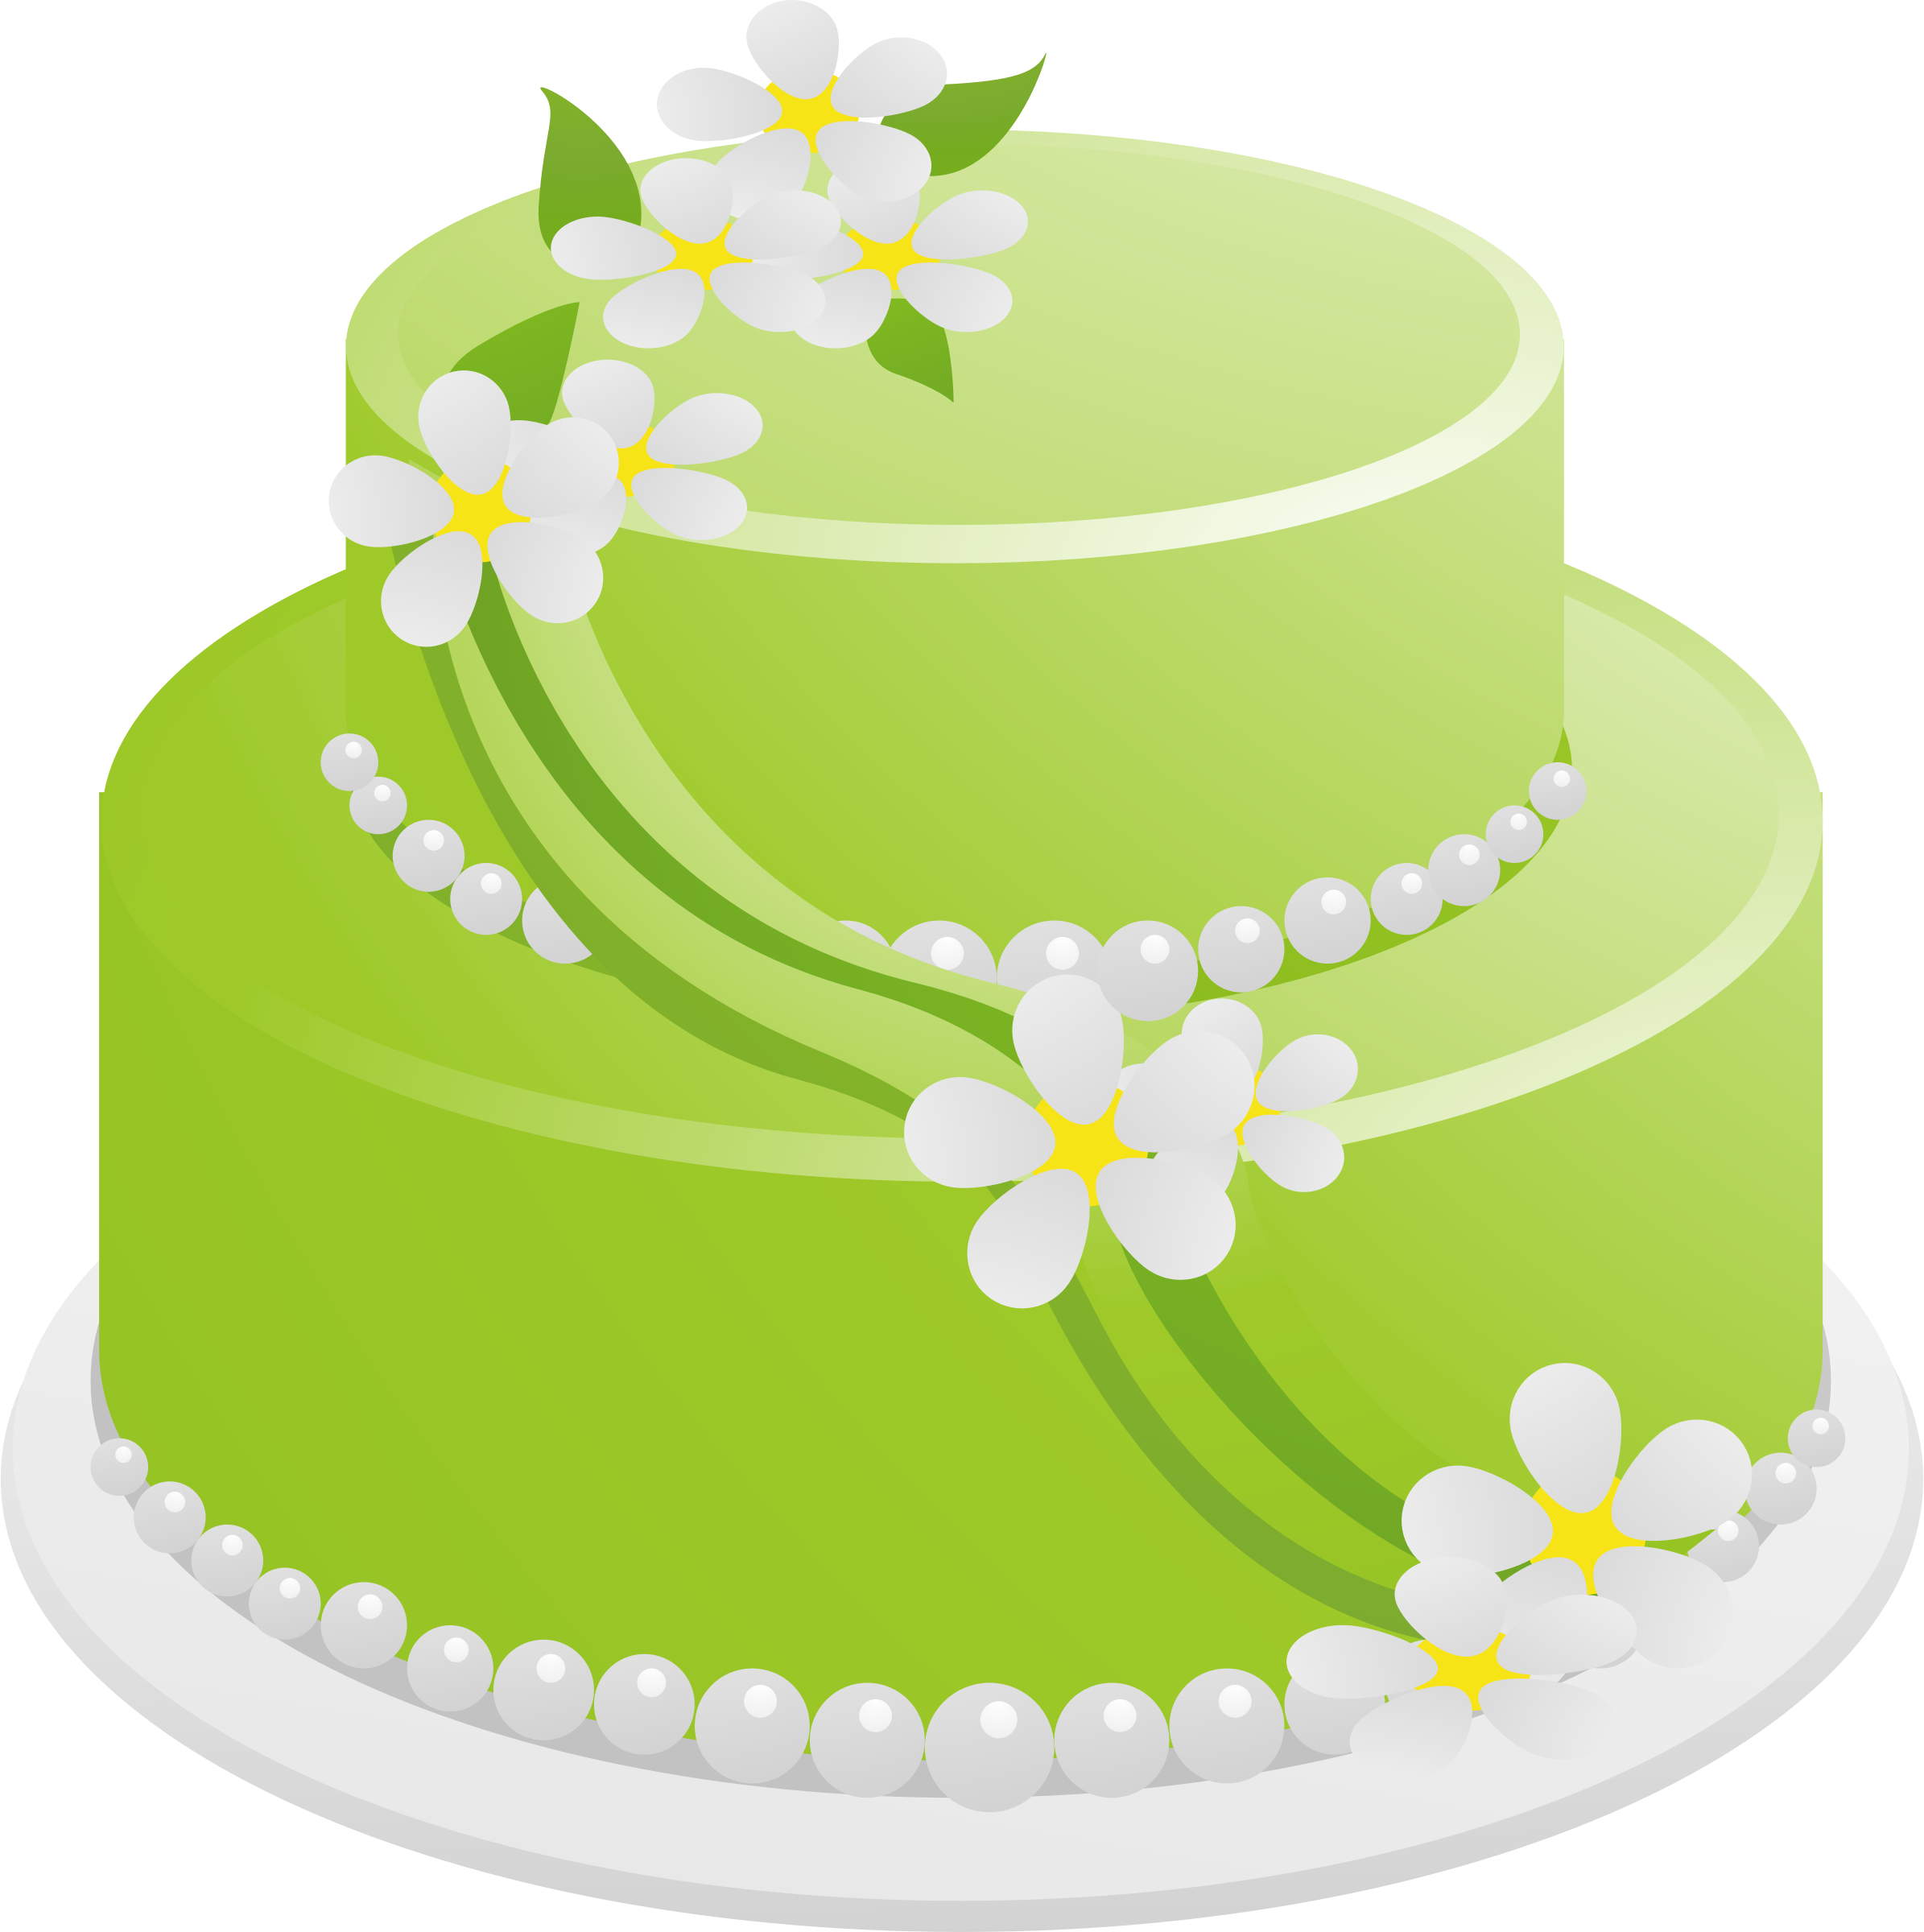 Logo clipart cake. Birthday big image png